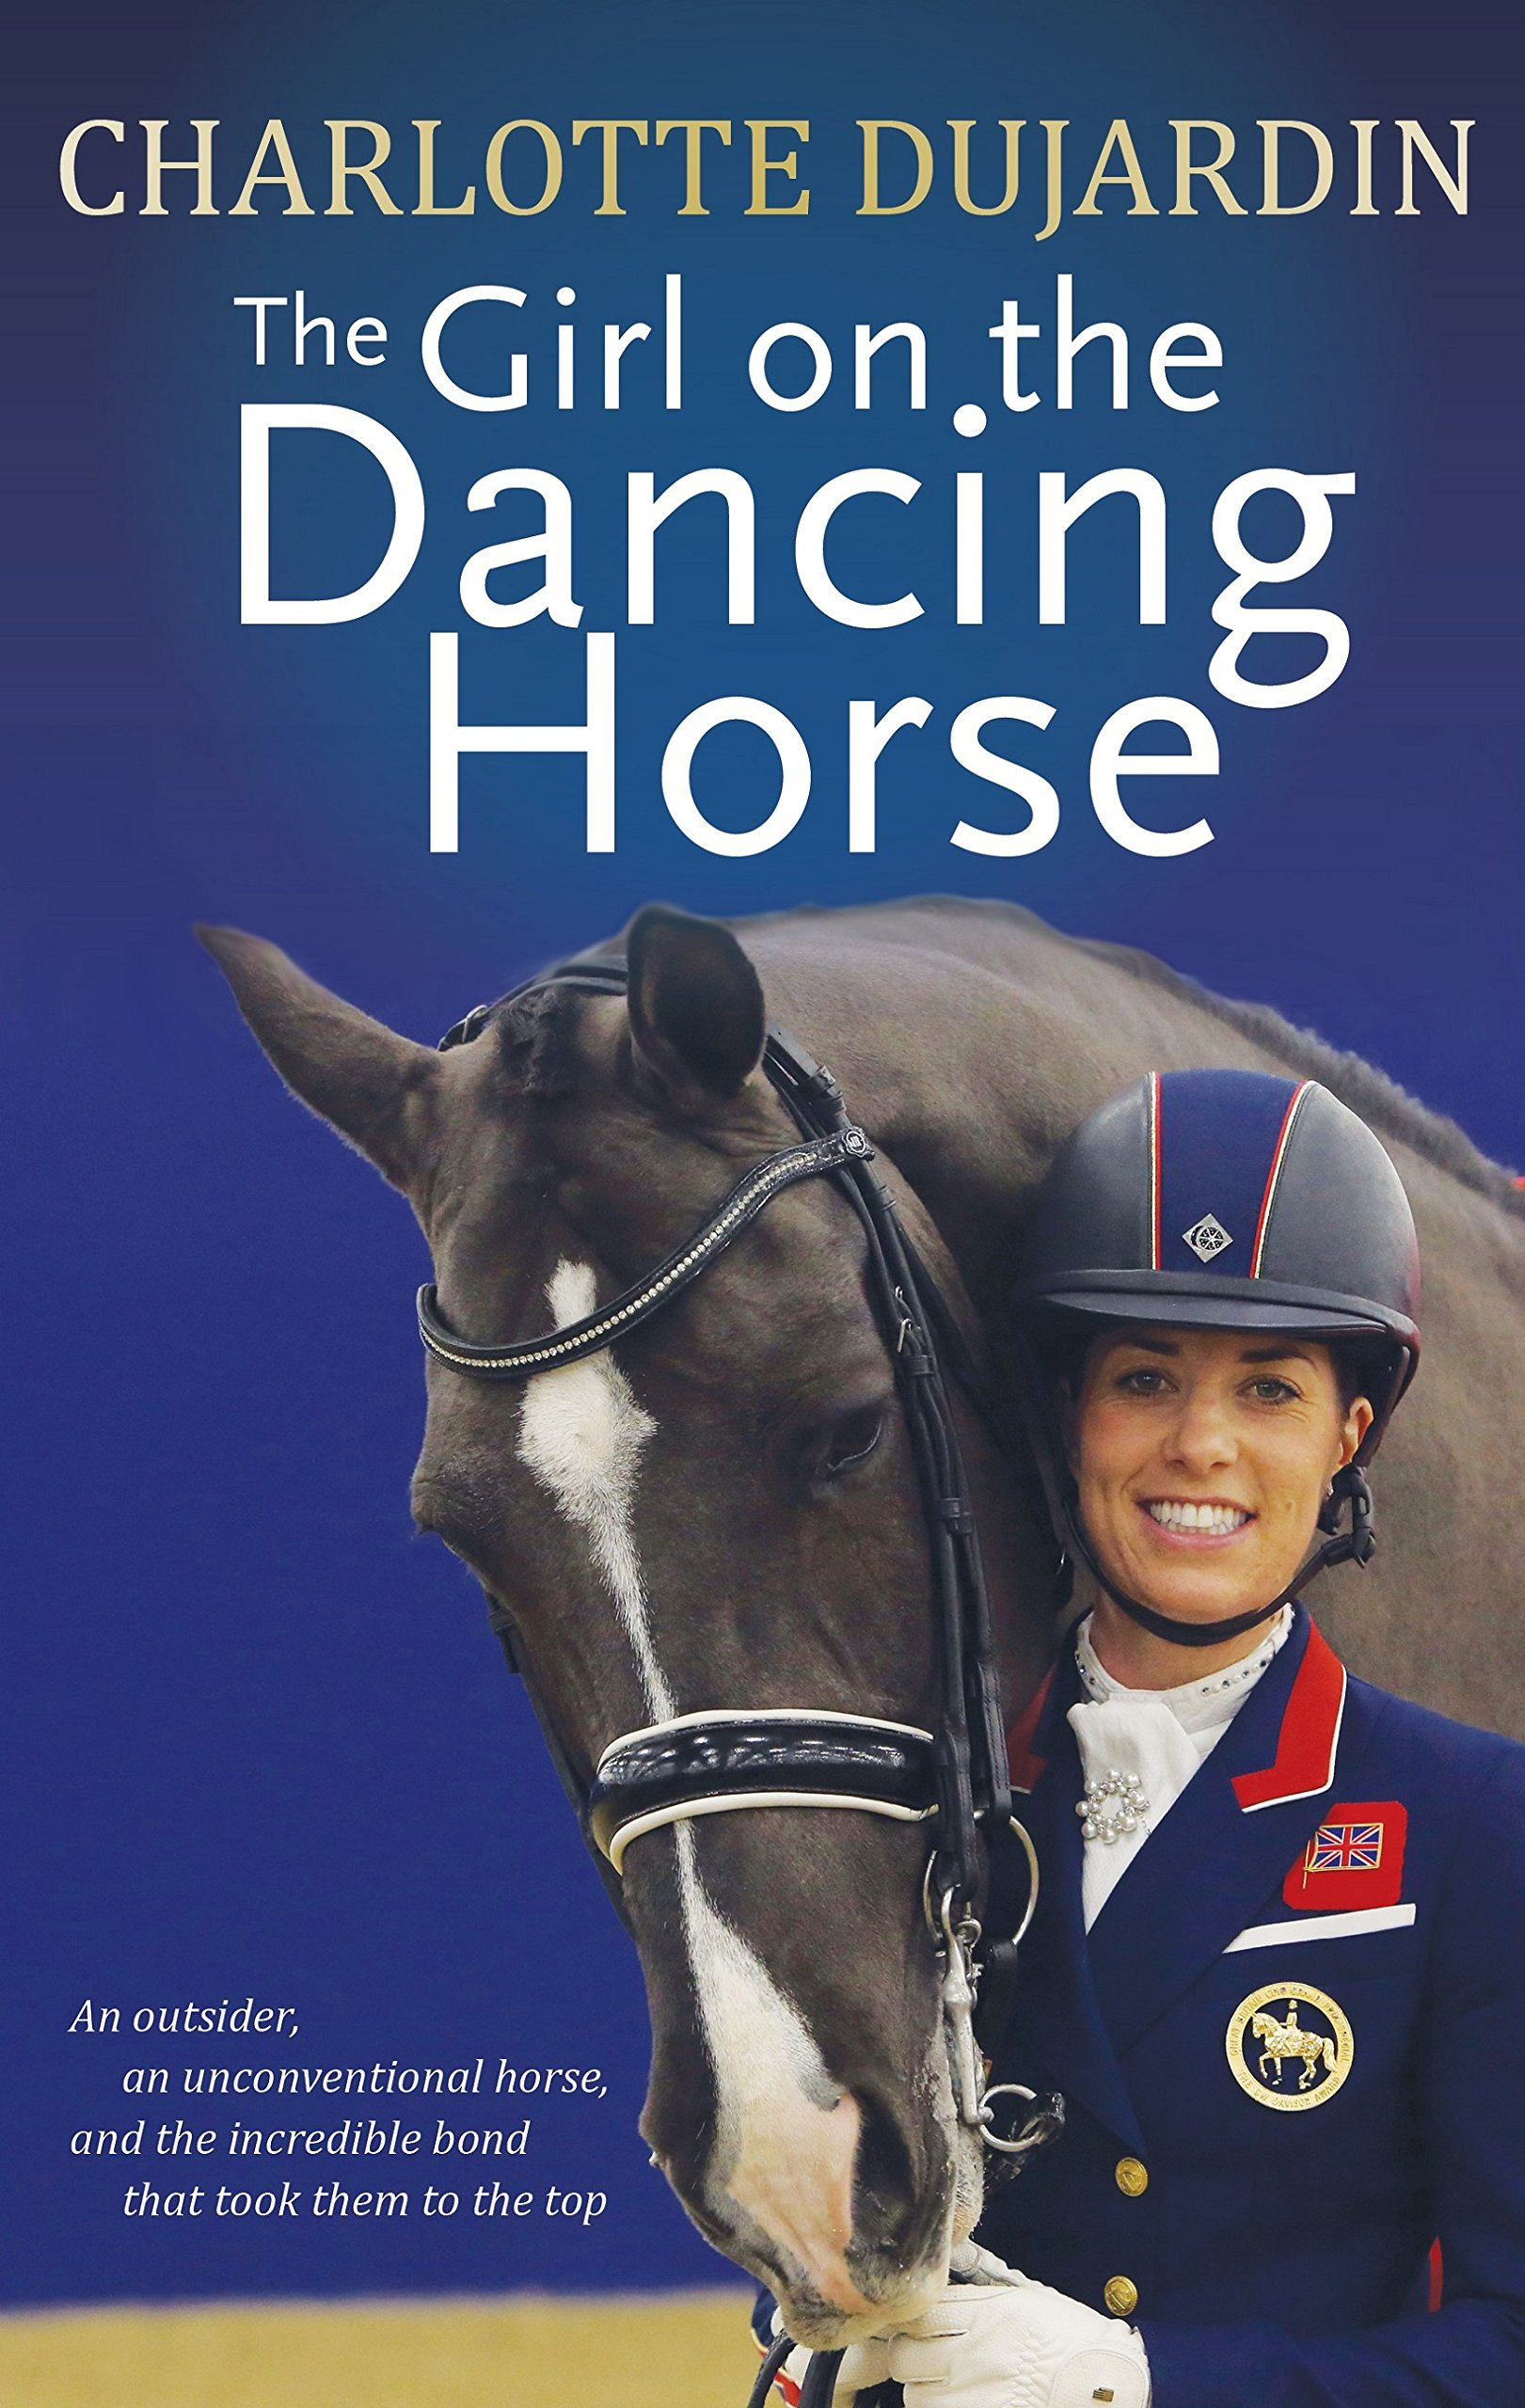 The Girl On The Dancing Horse  Charlotte Dujardin And Valegro